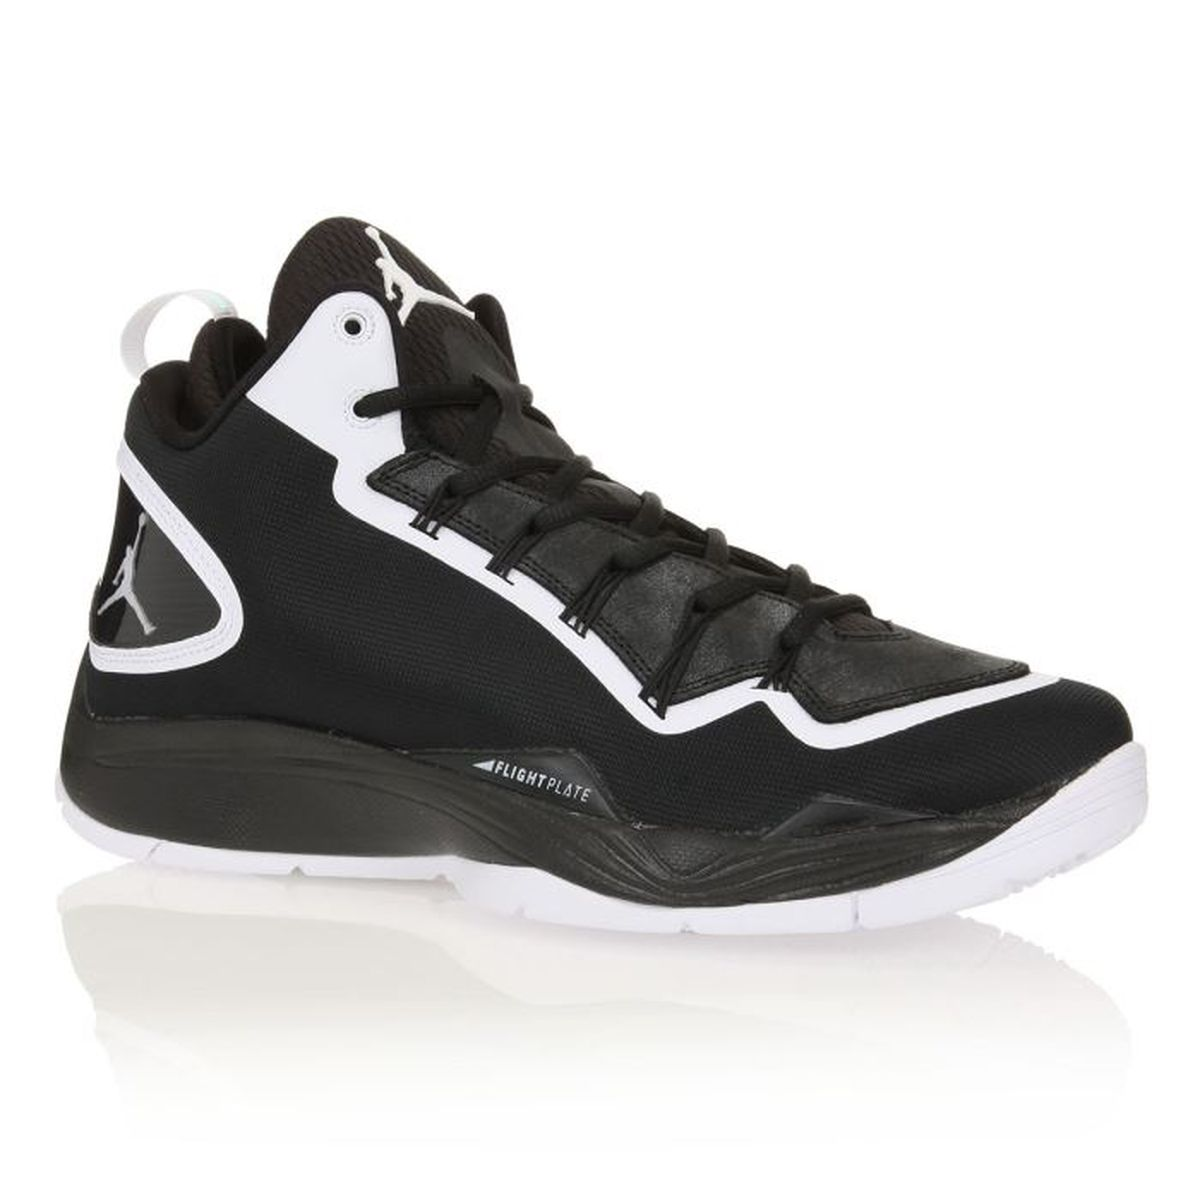 Jordan Cher Superfly Cdiscount Nike Pas Prix 2 Homme Chaussures rBedCxo